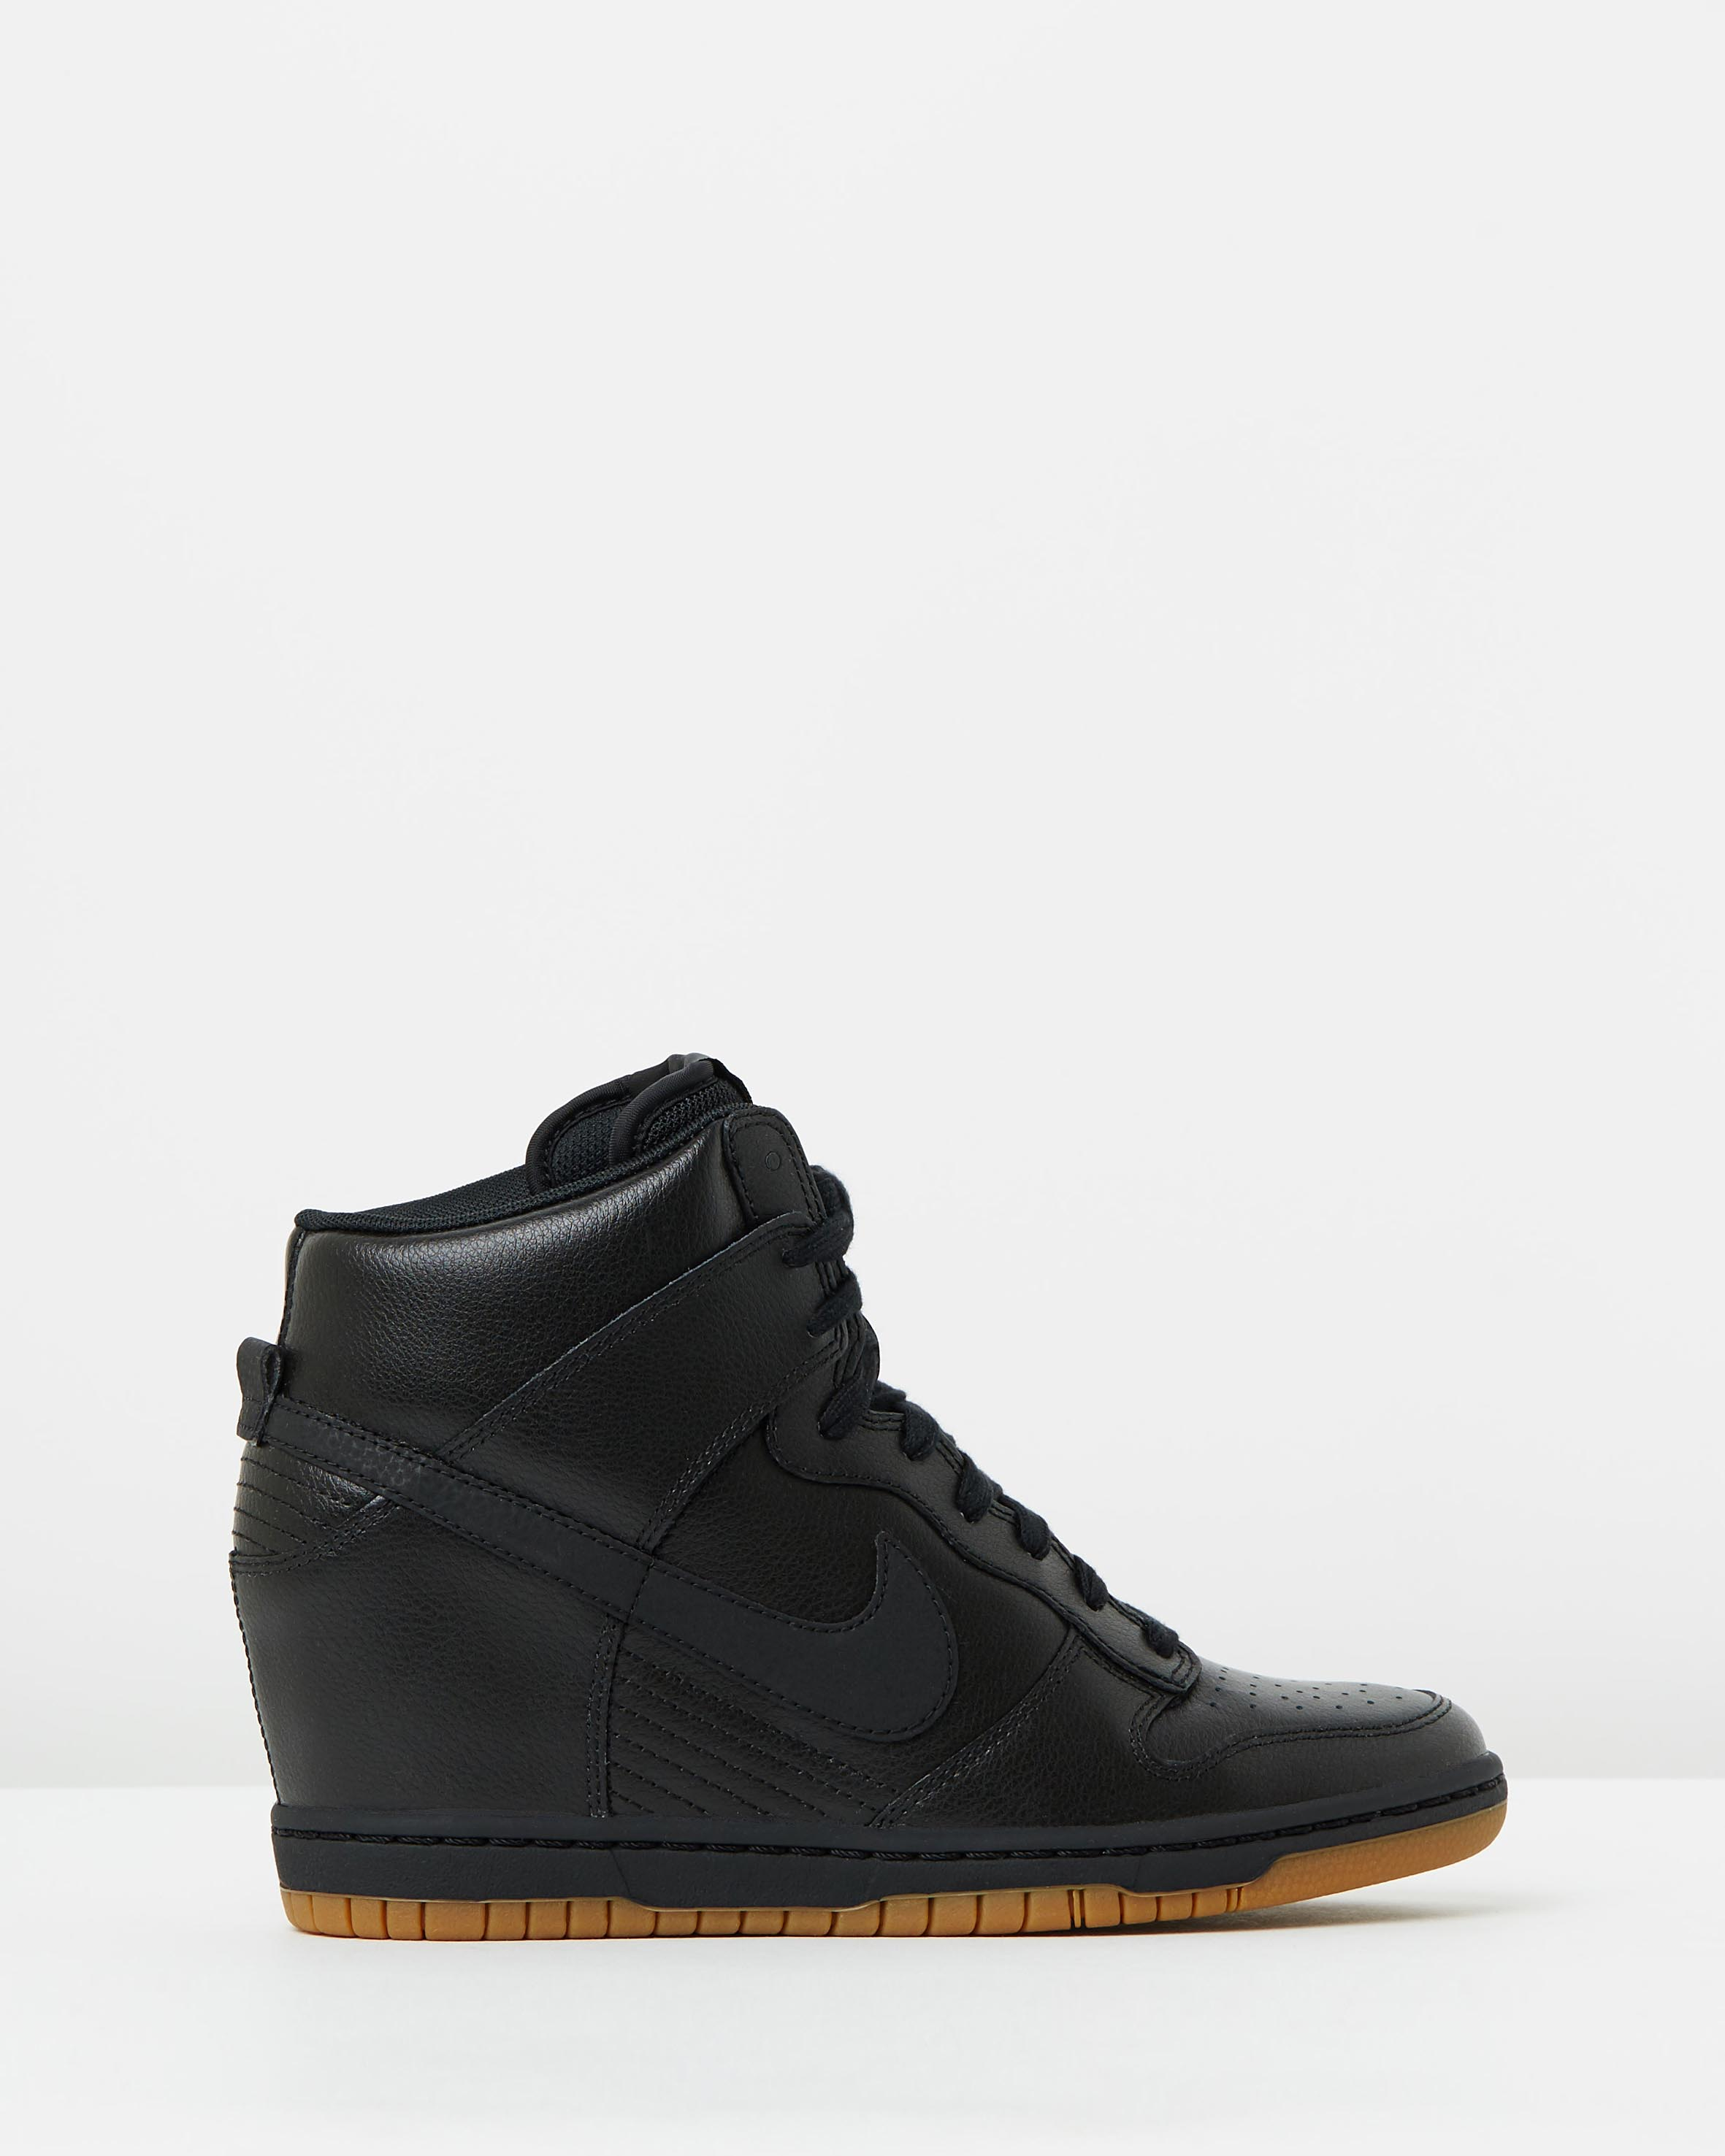 Place to buy nike shoes